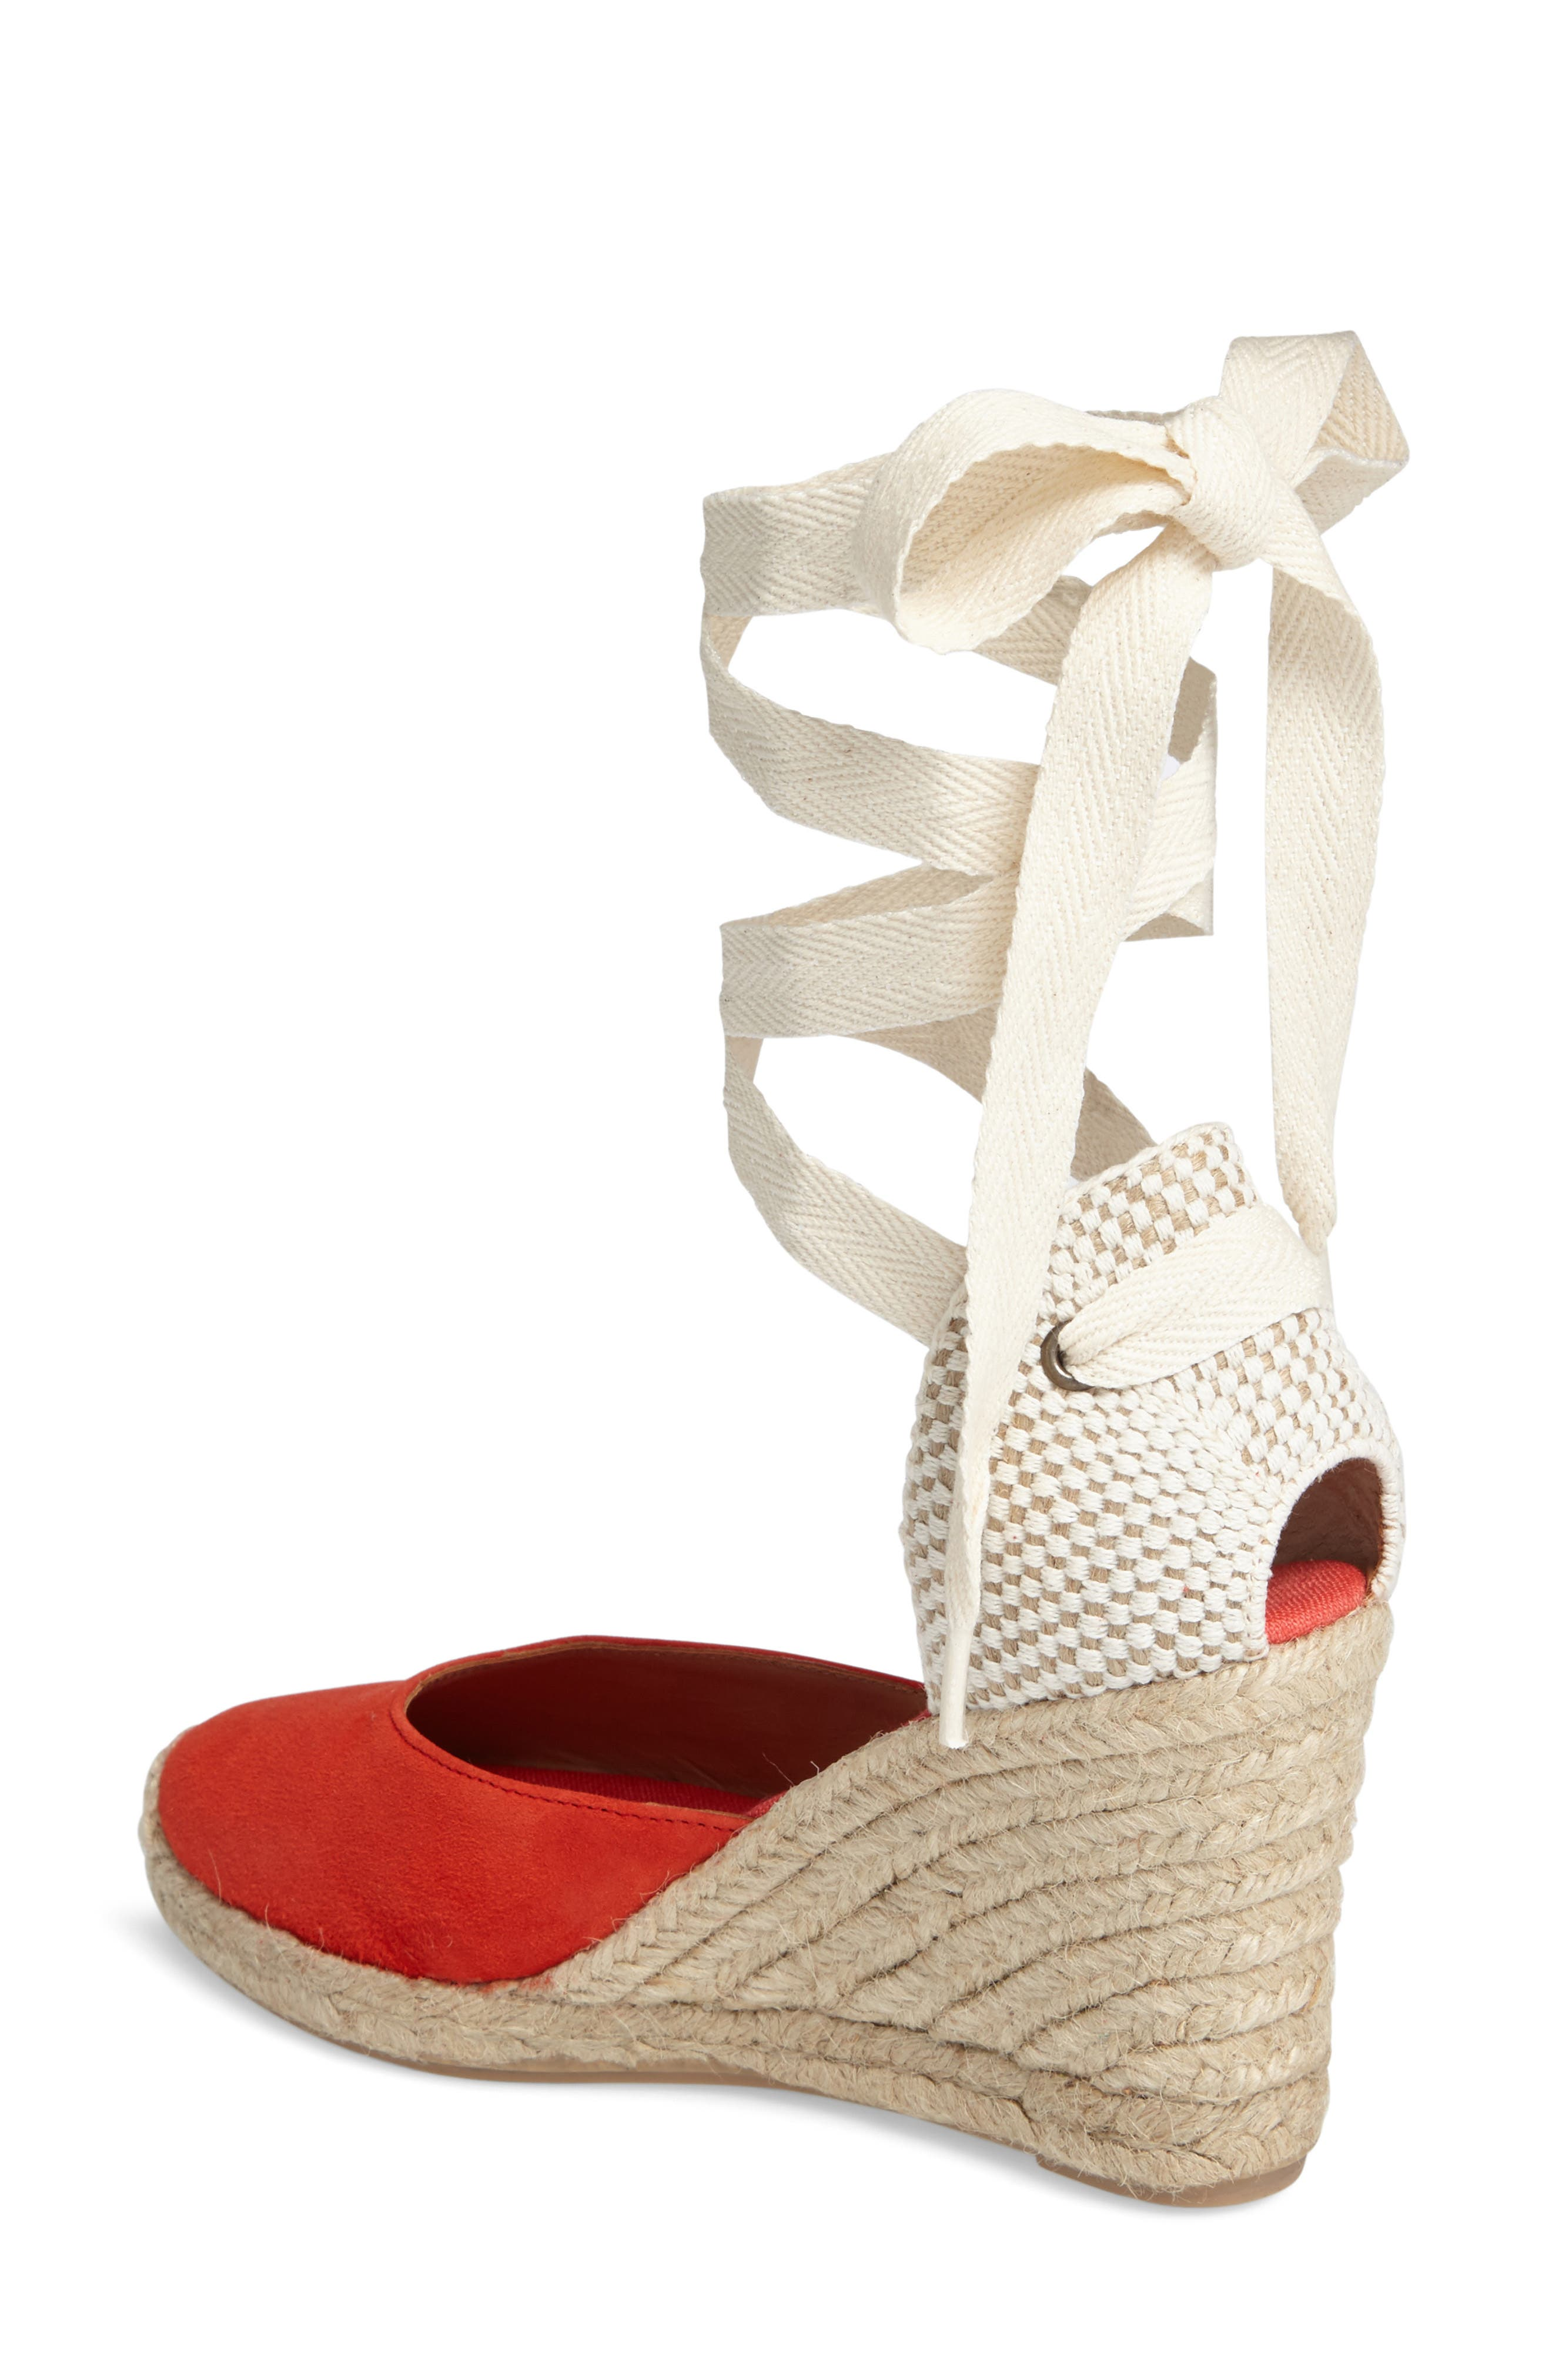 Wedge Sandal,                             Alternate thumbnail 2, color,                             Fire Red Suede